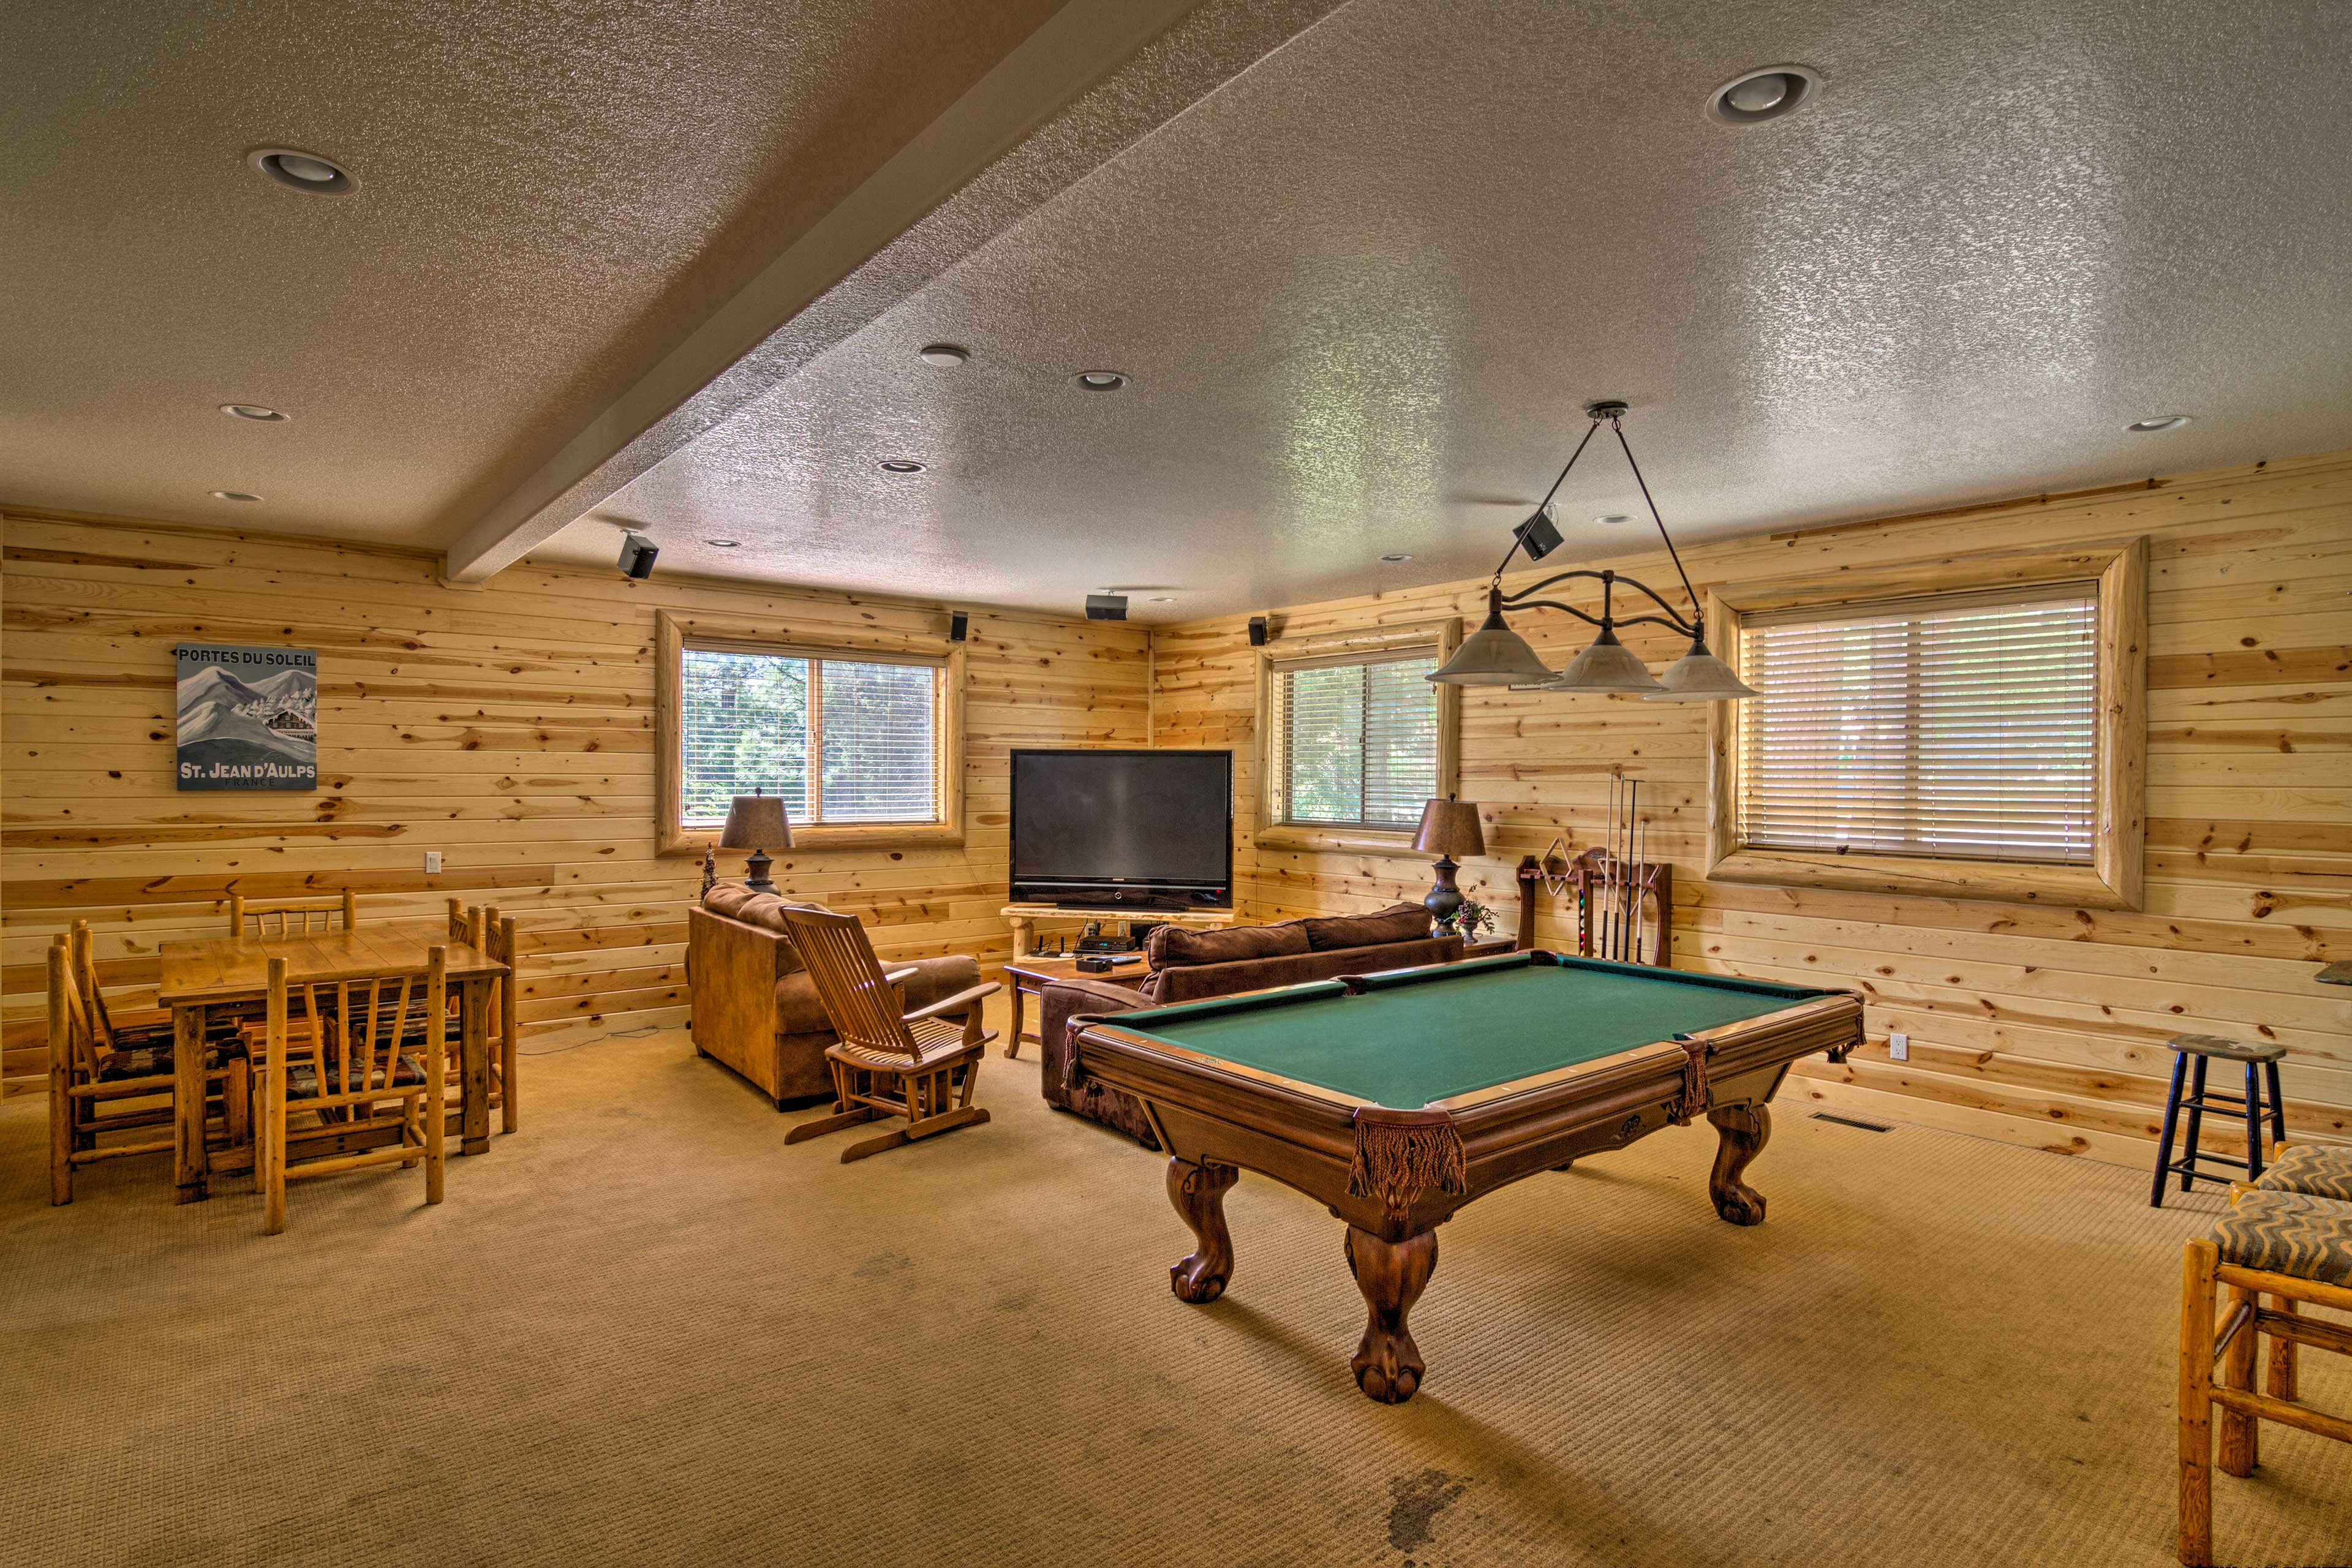 Challenge your fellow guests to a competitive game of billiards!